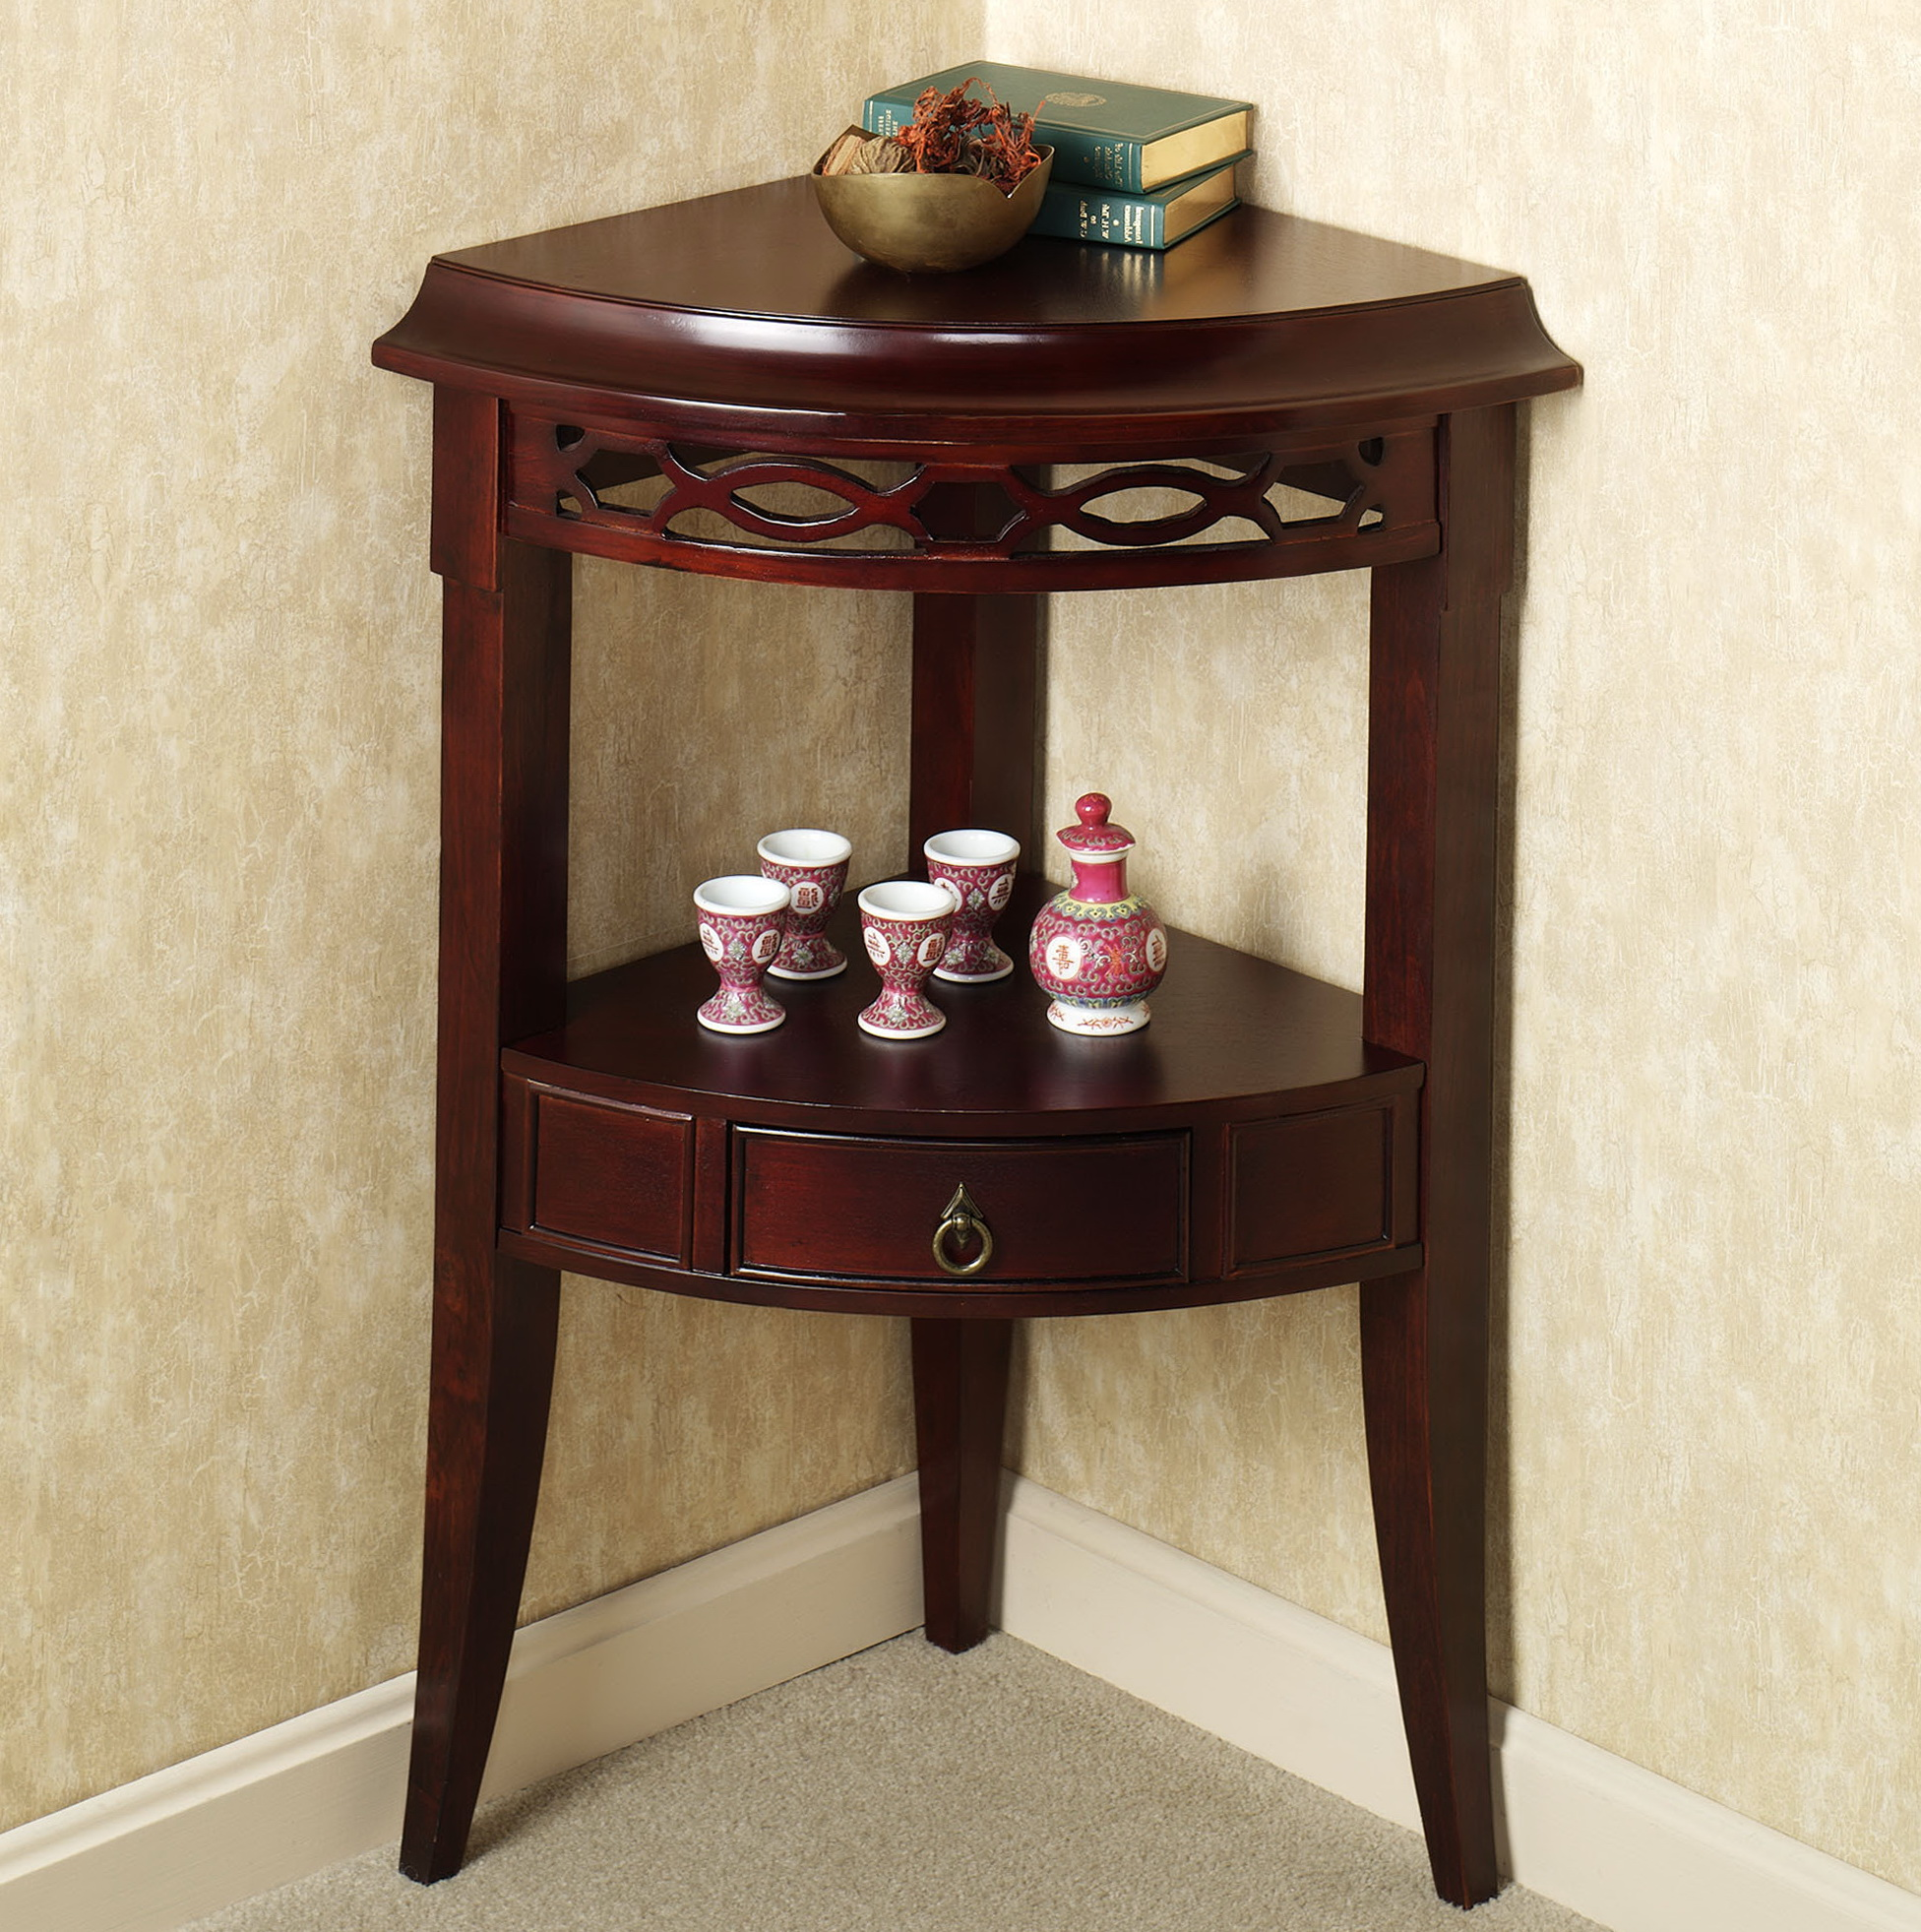 Small accent tables for bathrooms home design ideas for Small bathroom accent tables